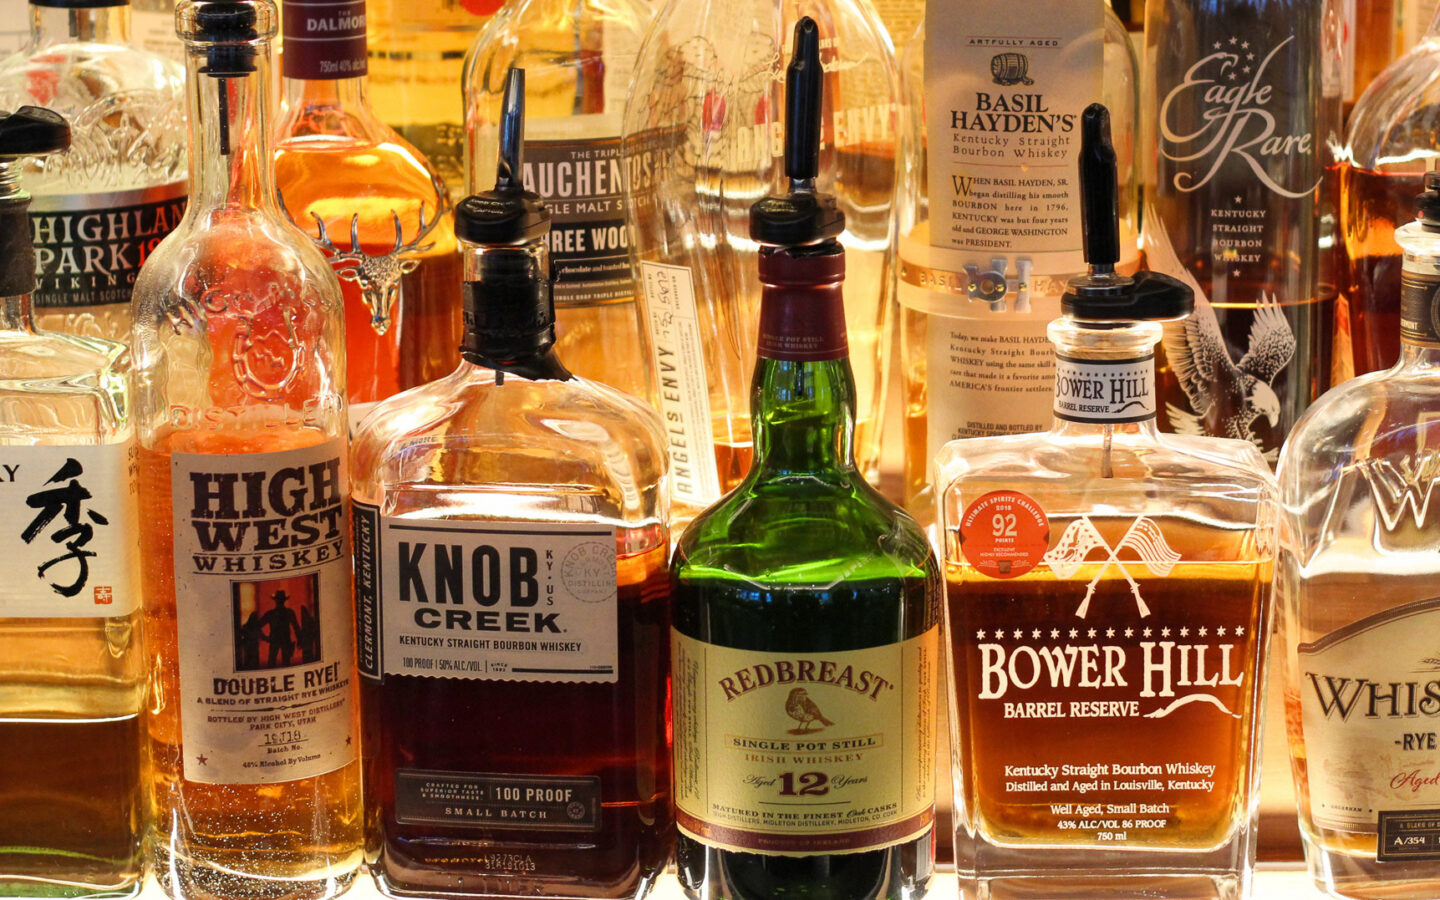 Bar shelf with a large selection of whiskies